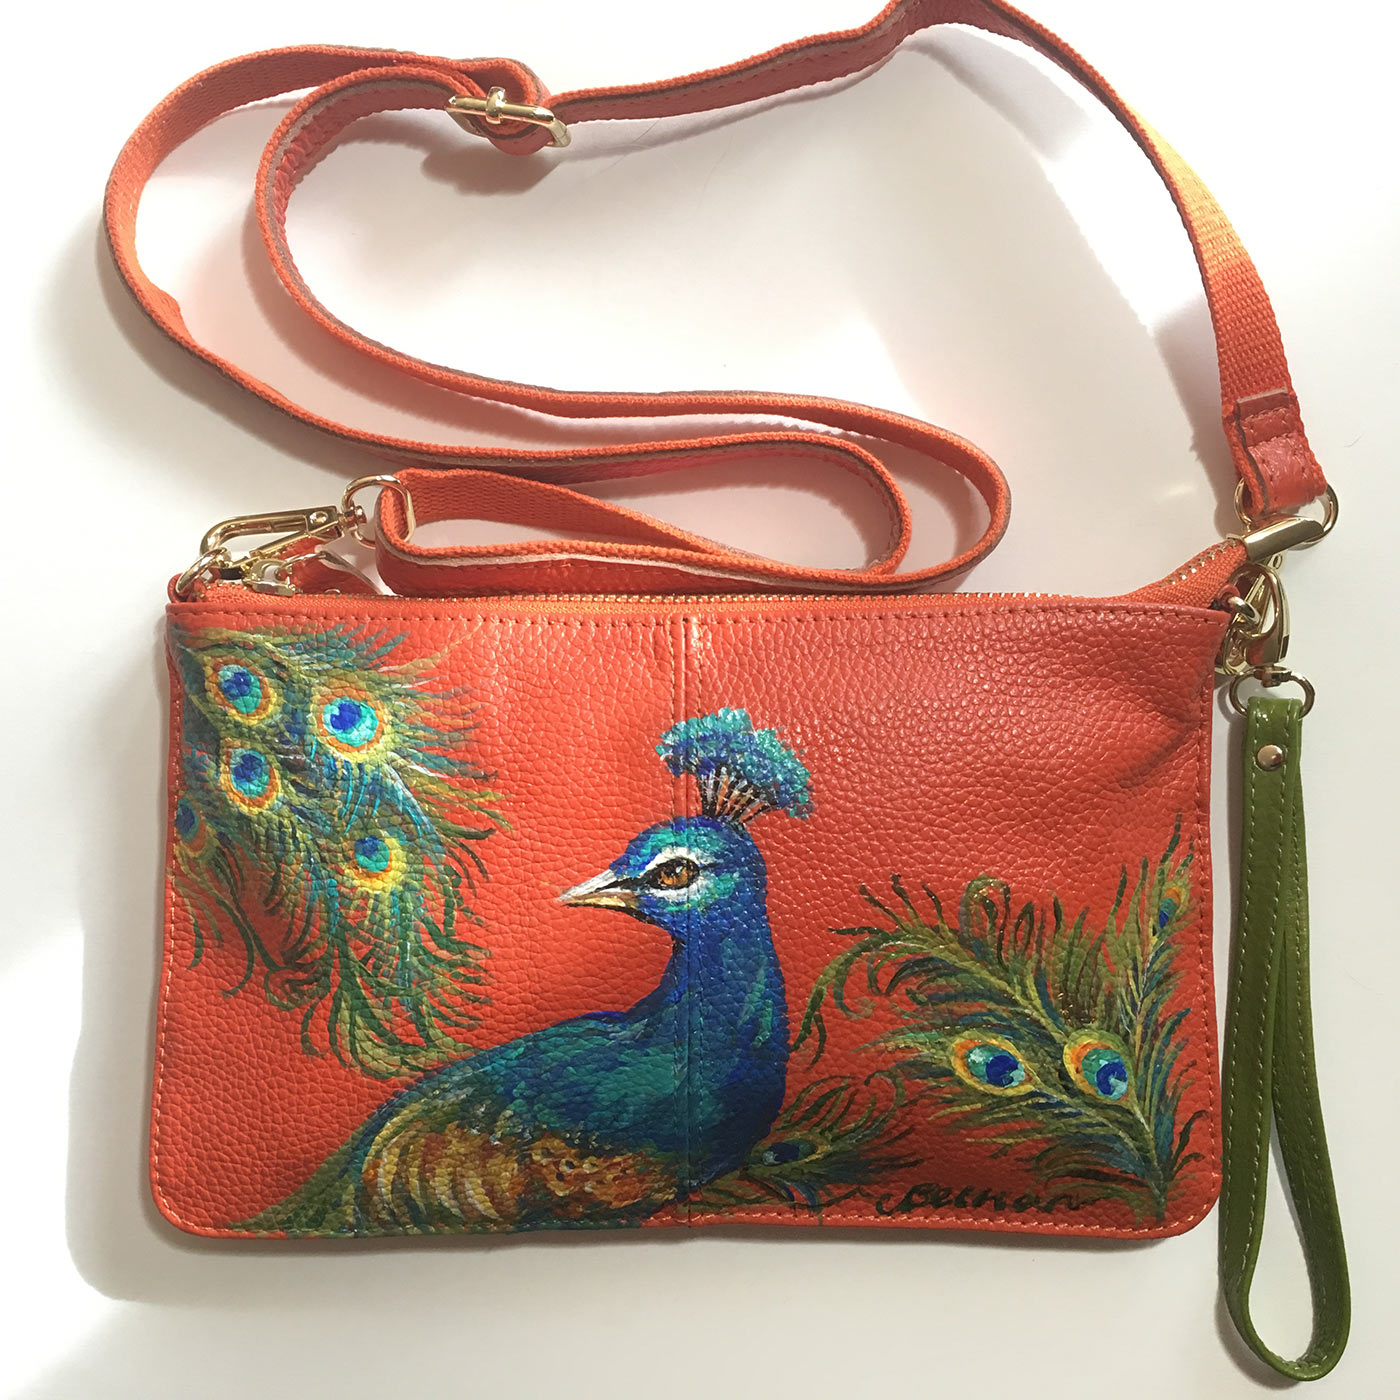 Hand-Painted Leather Cross Body Bag - Birds